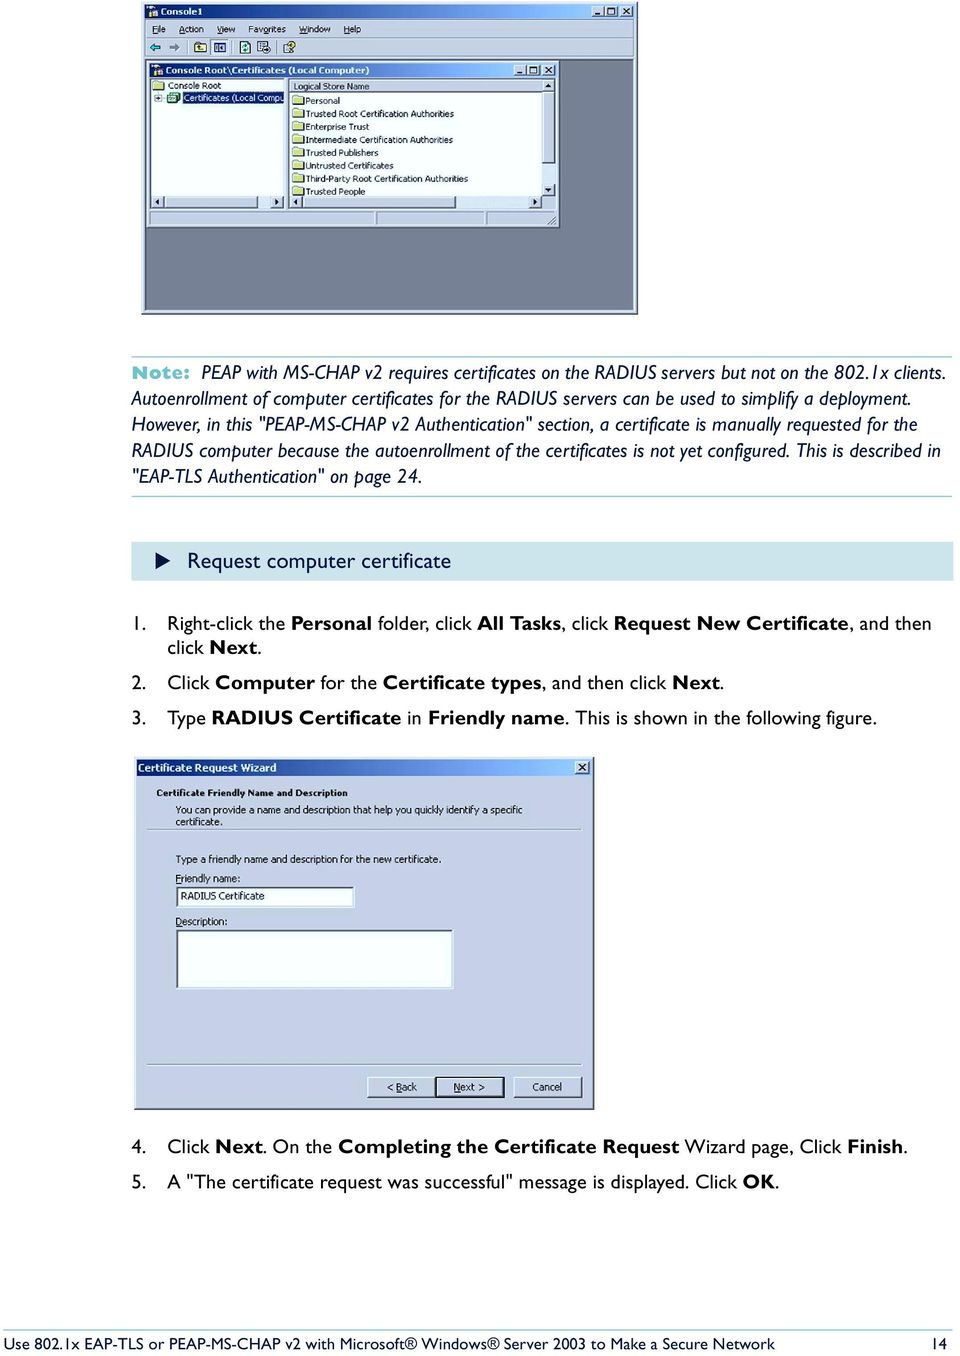 "However, in this ""PEAP-MS-CHAP v2 Authentication"" section, a certificate is manually requested for the RADIUS computer because the autoenrollment of the certificates is not yet configured."